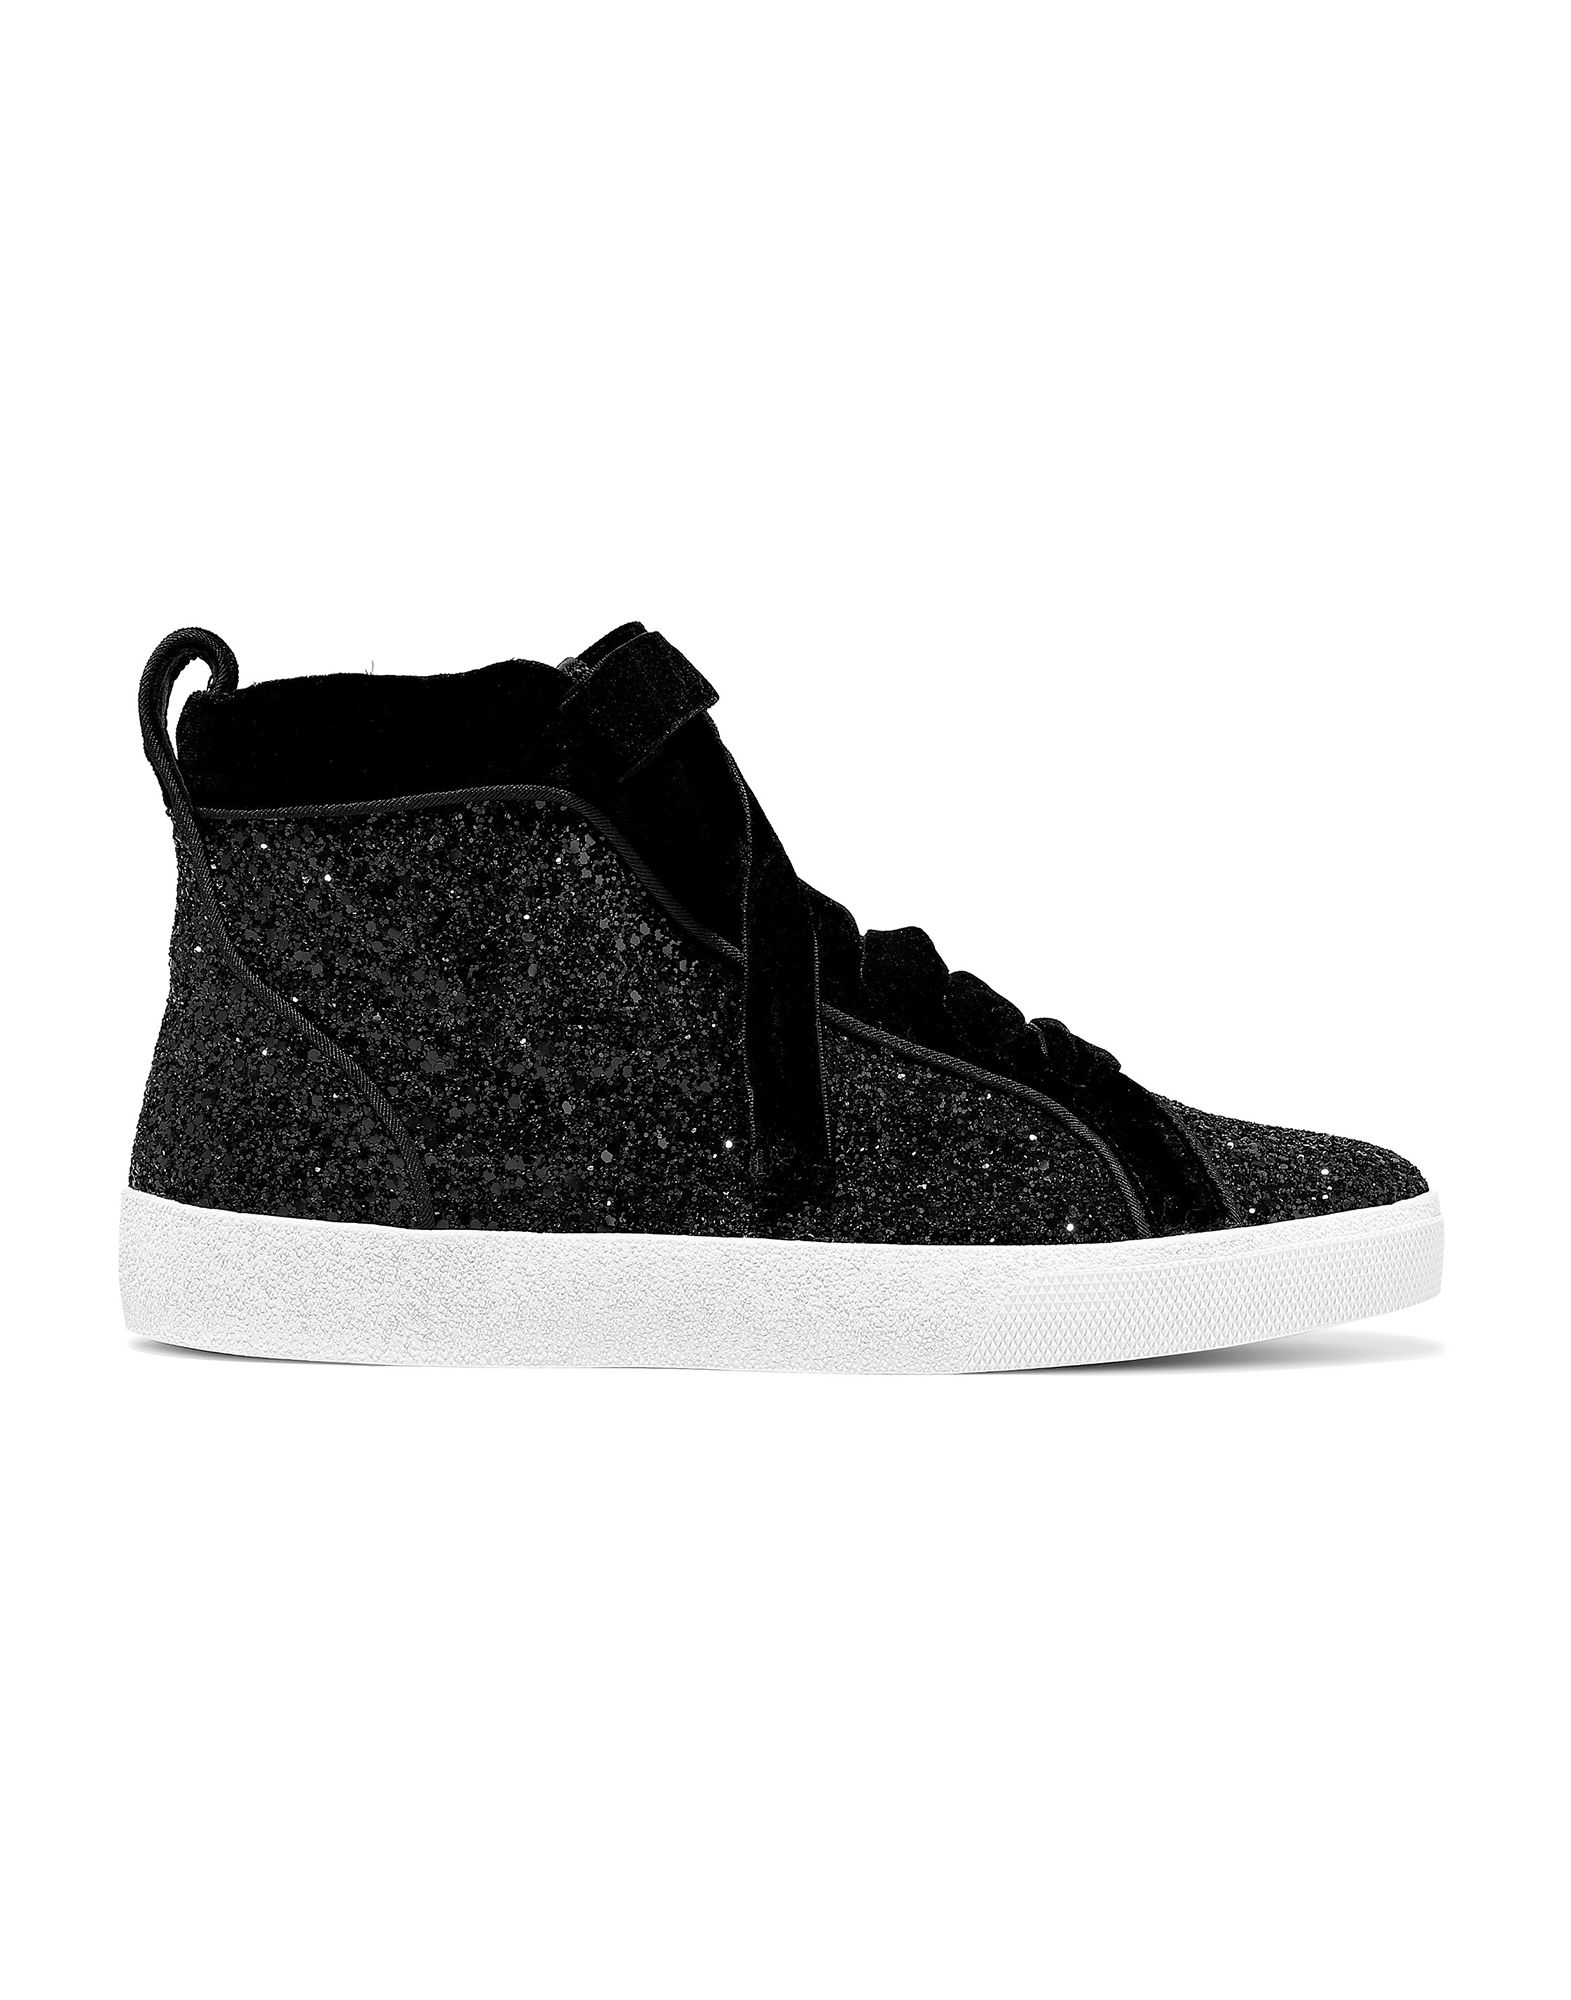 ALICE + OLIVIA Sneakers. velvet, glitter, solid color, laces, round toeline, leather lining, rubber sole, contains non-textile parts of animal origin, flat. Textile fibers